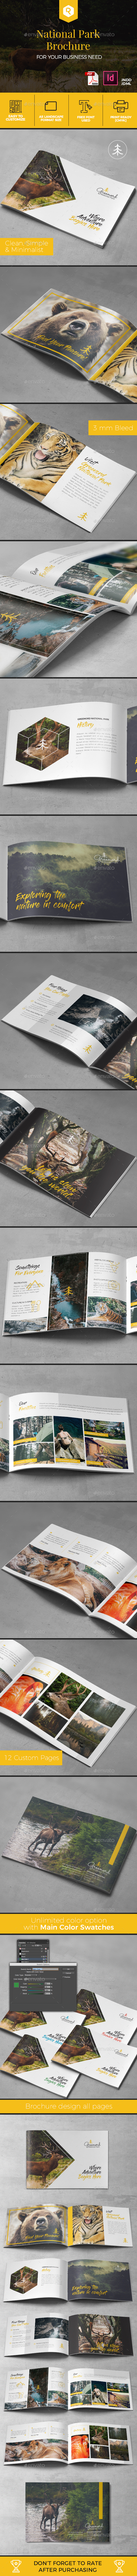 A5 National Park Brochure Template - Corporate Brochures